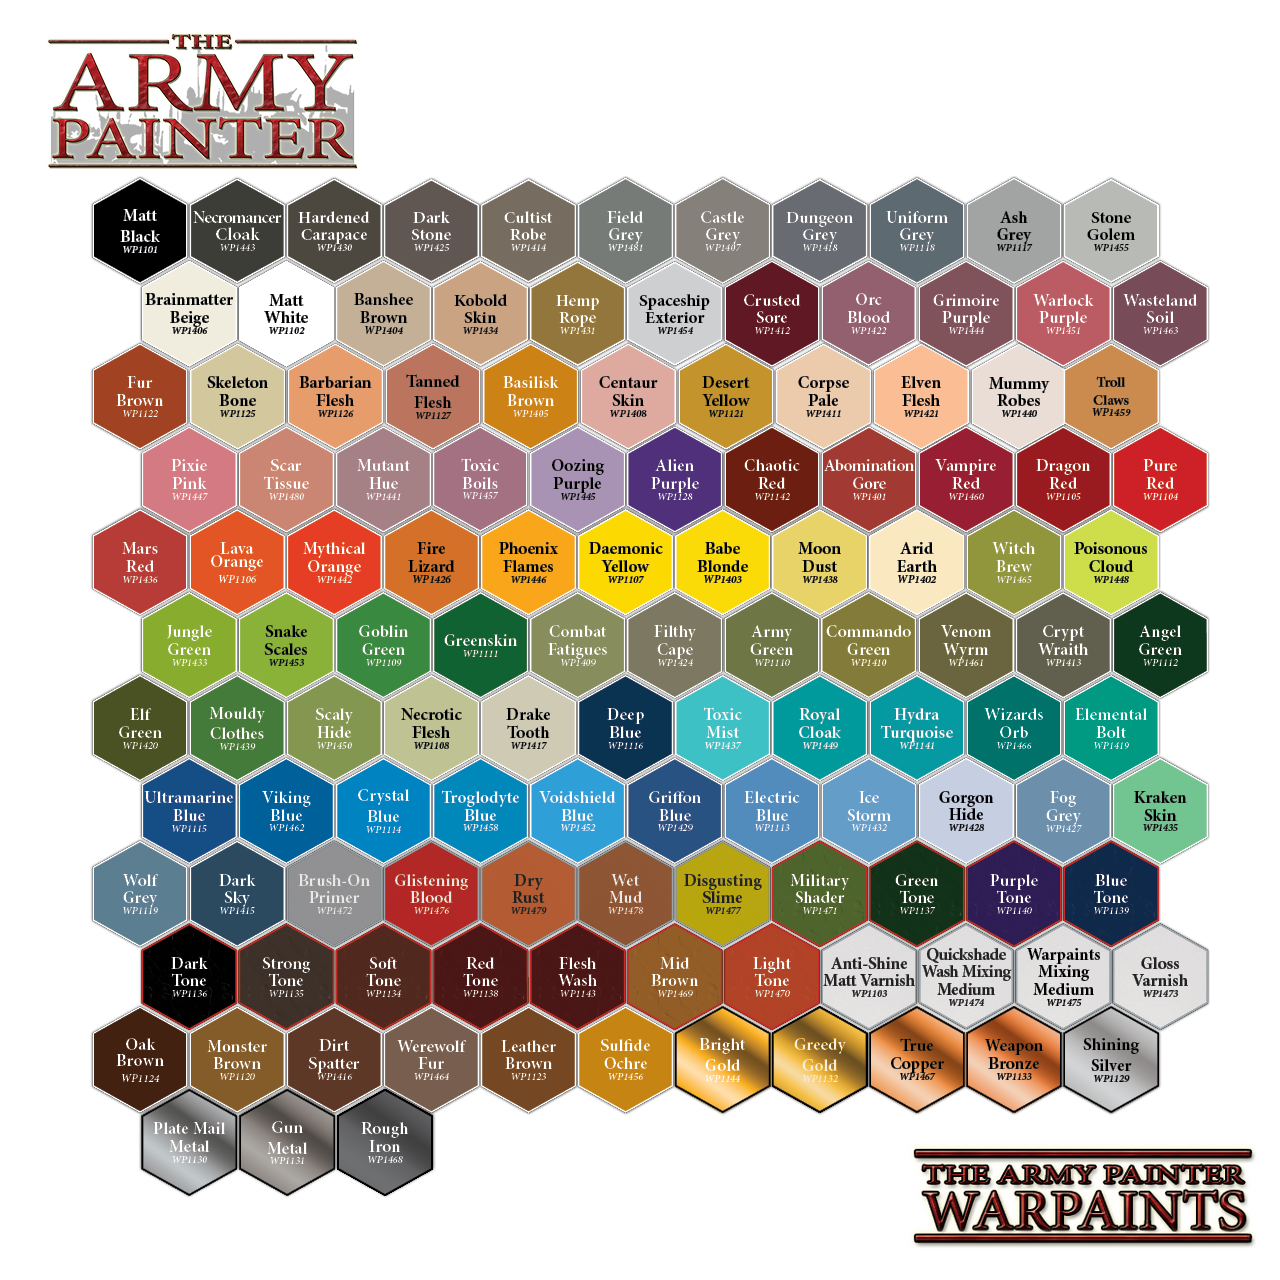 Warpaints: Arid Earth | Davis Cards & Games